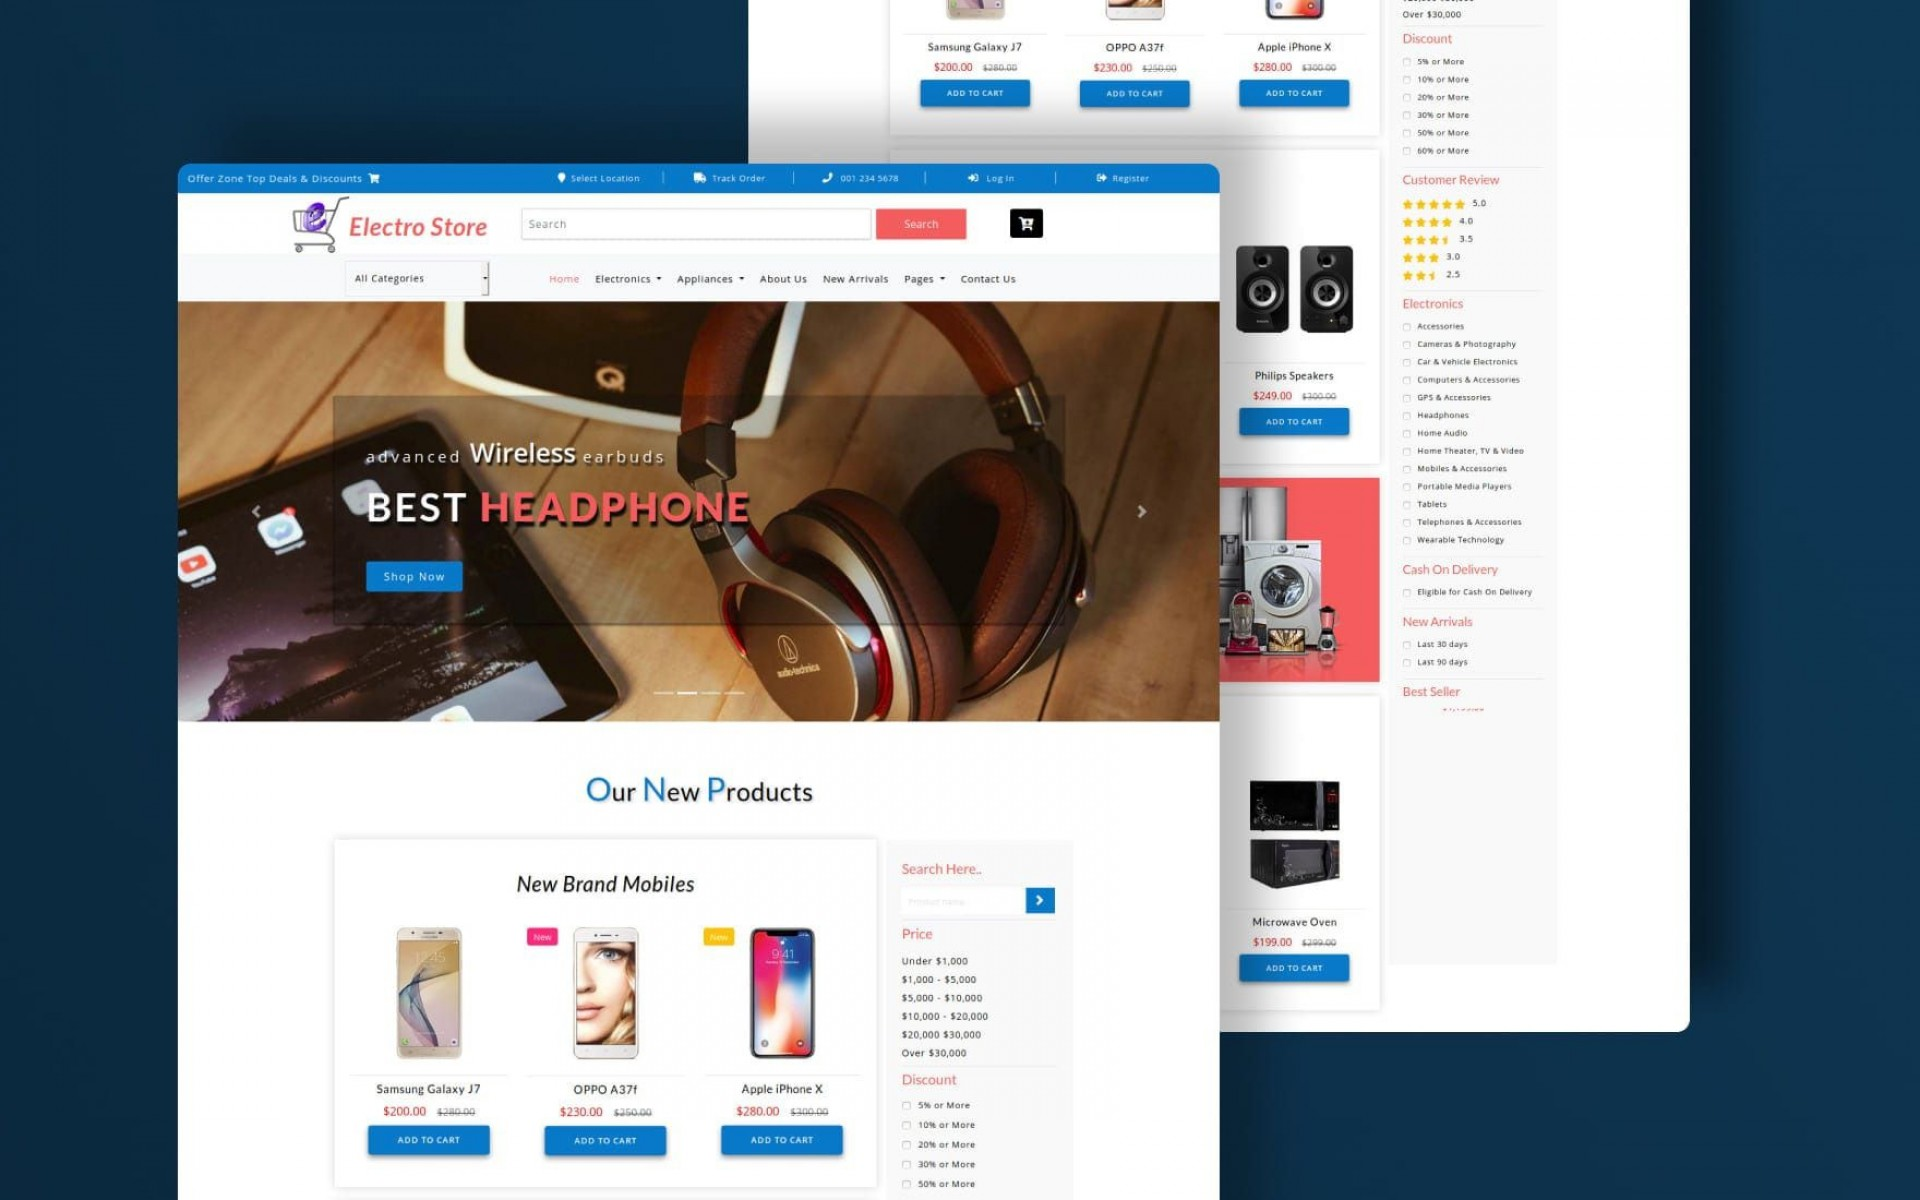 003 Stupendou Free Html Template Download For Online Shopping Website Picture  Websites1920